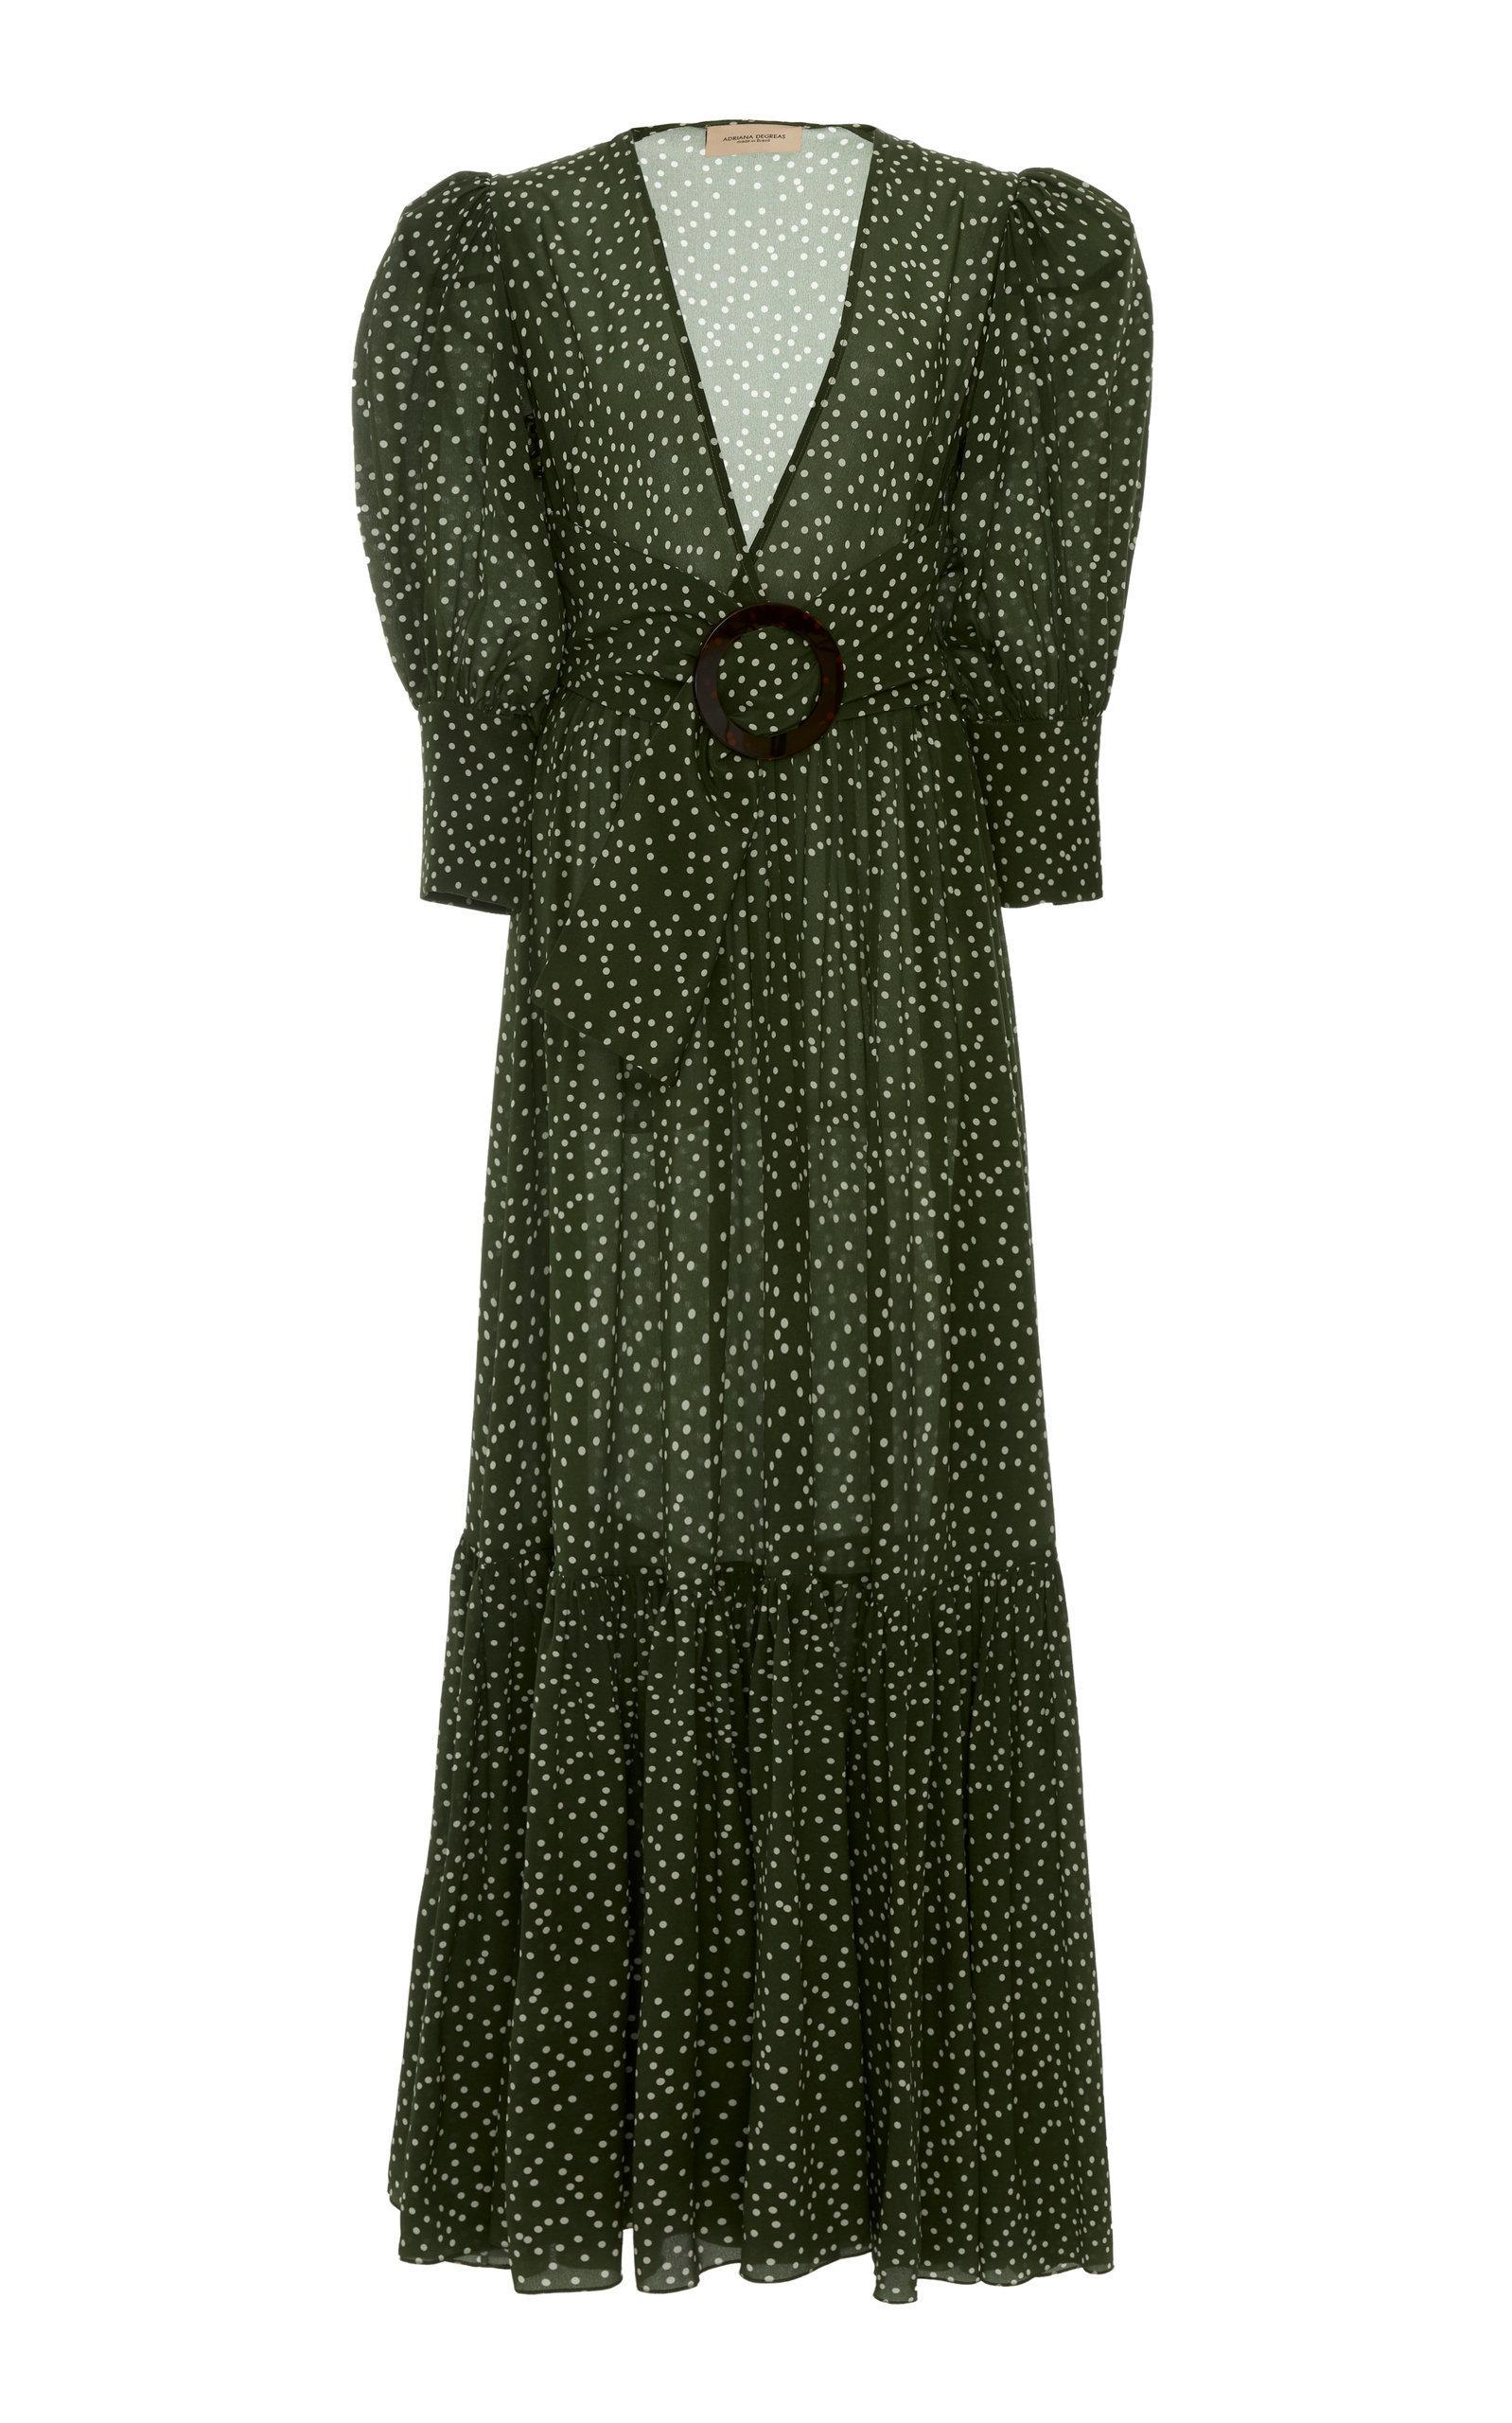 ecb7deaf73 Adriana Degreas Polka Dot Flared Silk Maxi Dress In Green | ModeSens